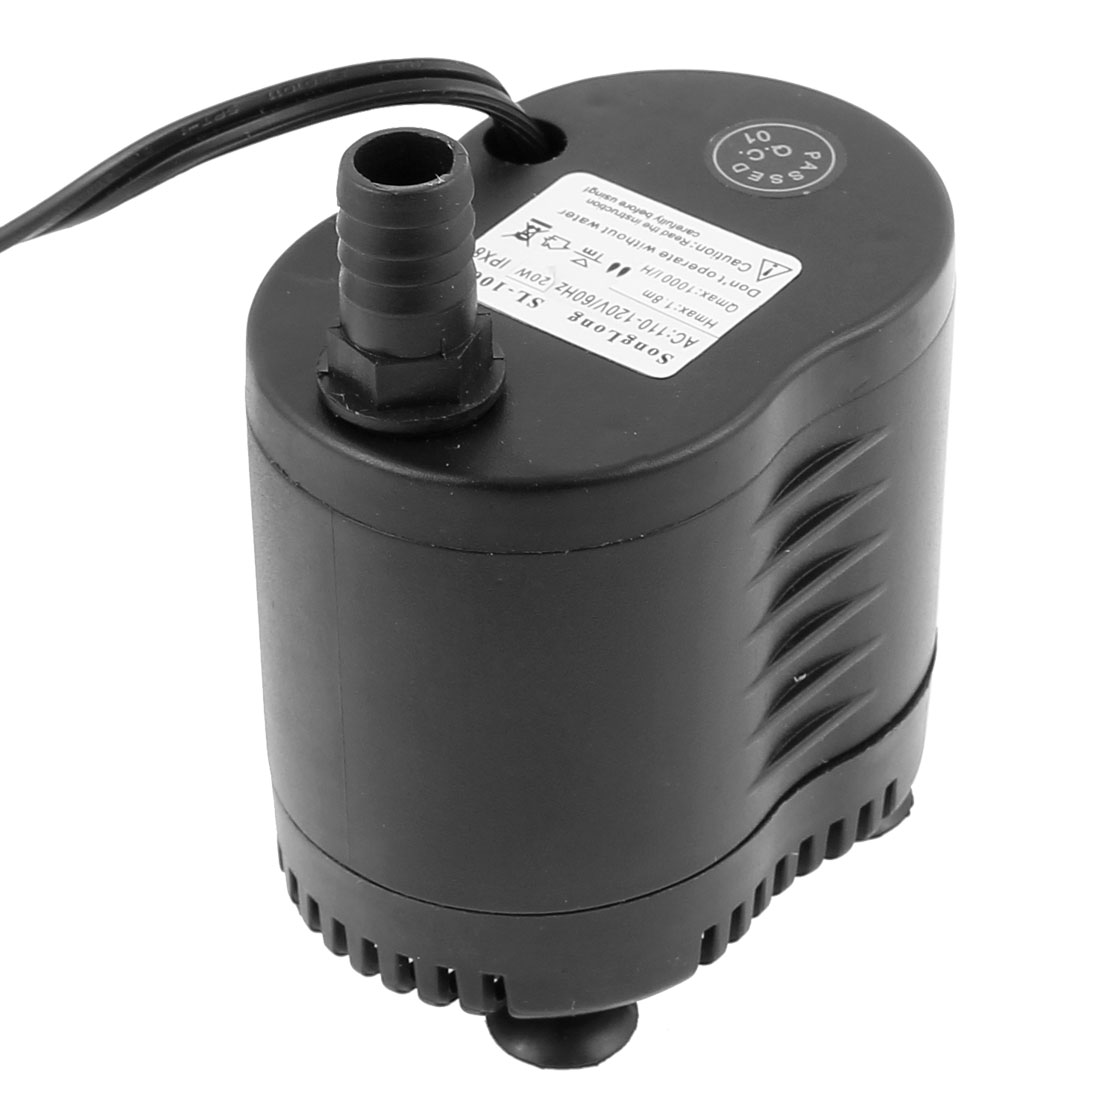 AC 110V-120V US Plug 20W 1000 L/H Flow Industrial Air Cooler Air-conditioning Pump